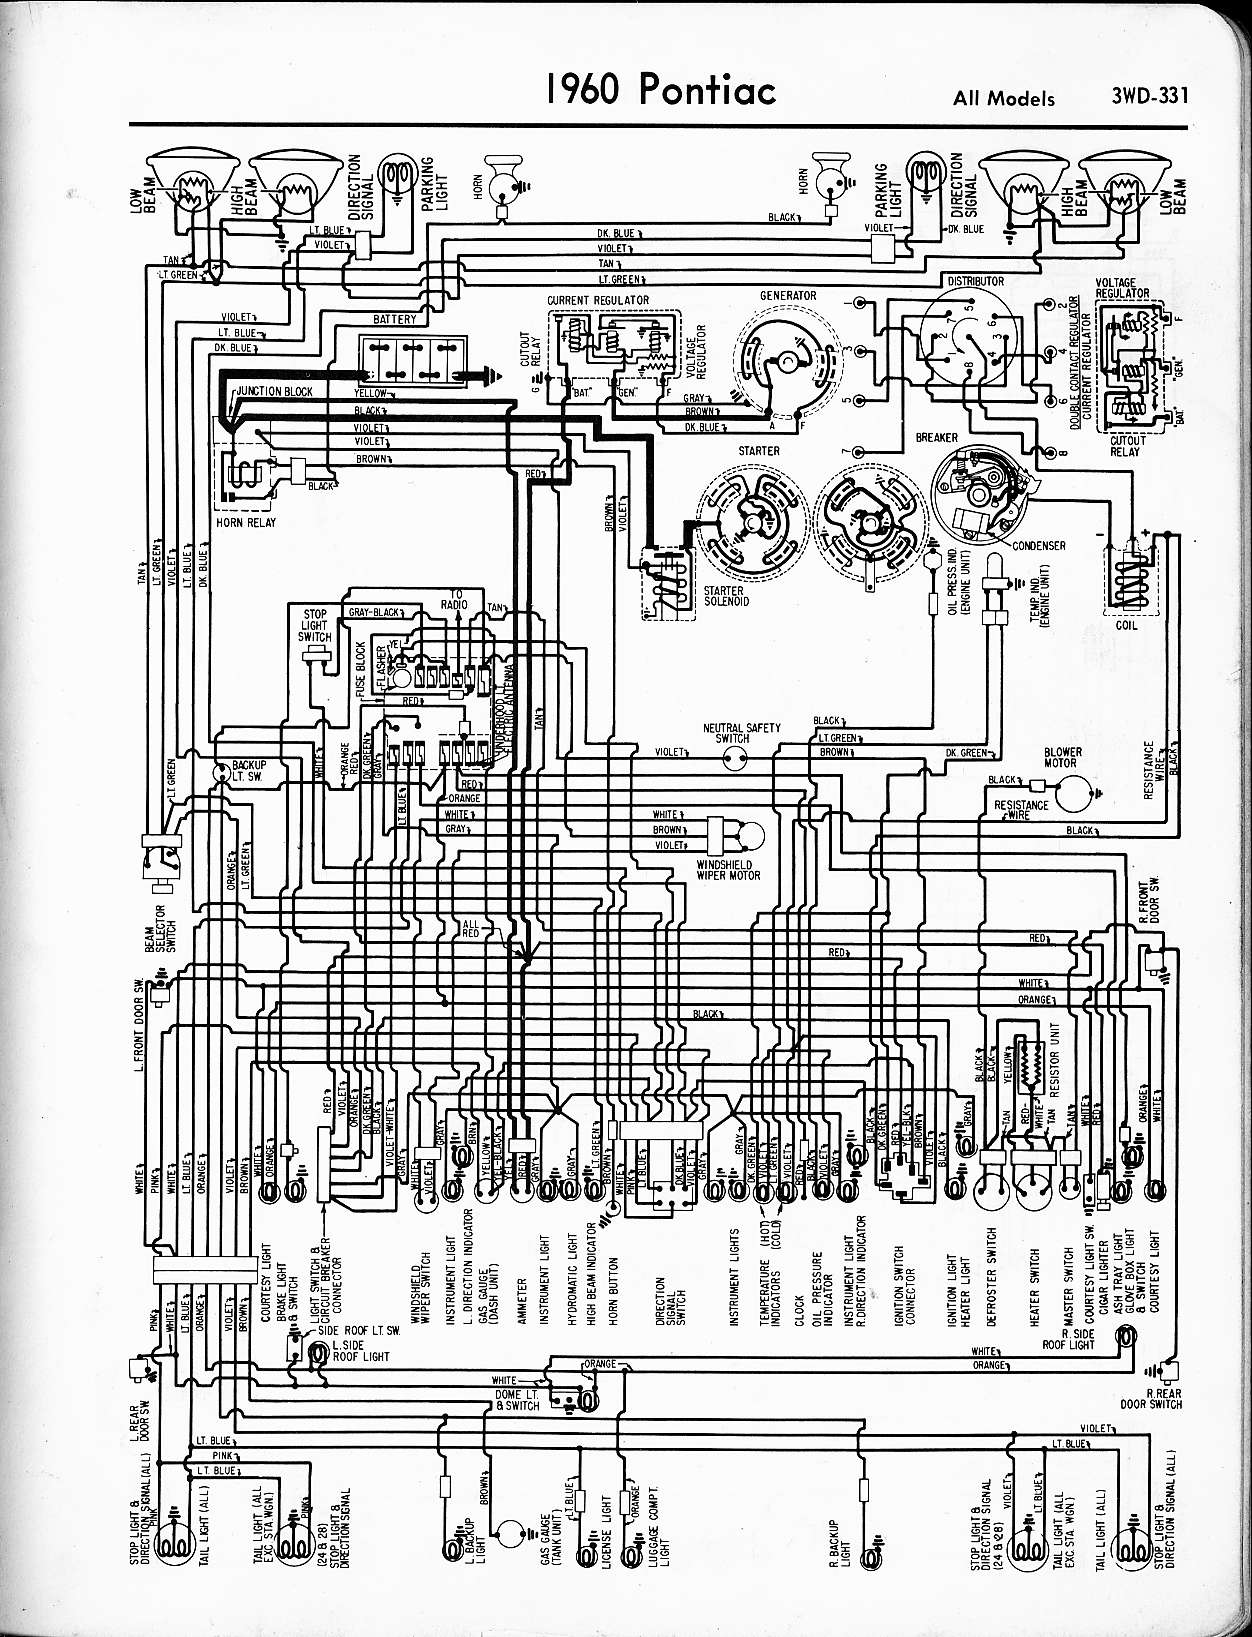 66 pontiac gto wiring diagram detailed schematics diagram rh mrskindsclass  com 1967 gto wiring diagram 1967 gto ignition switch wiring diagram